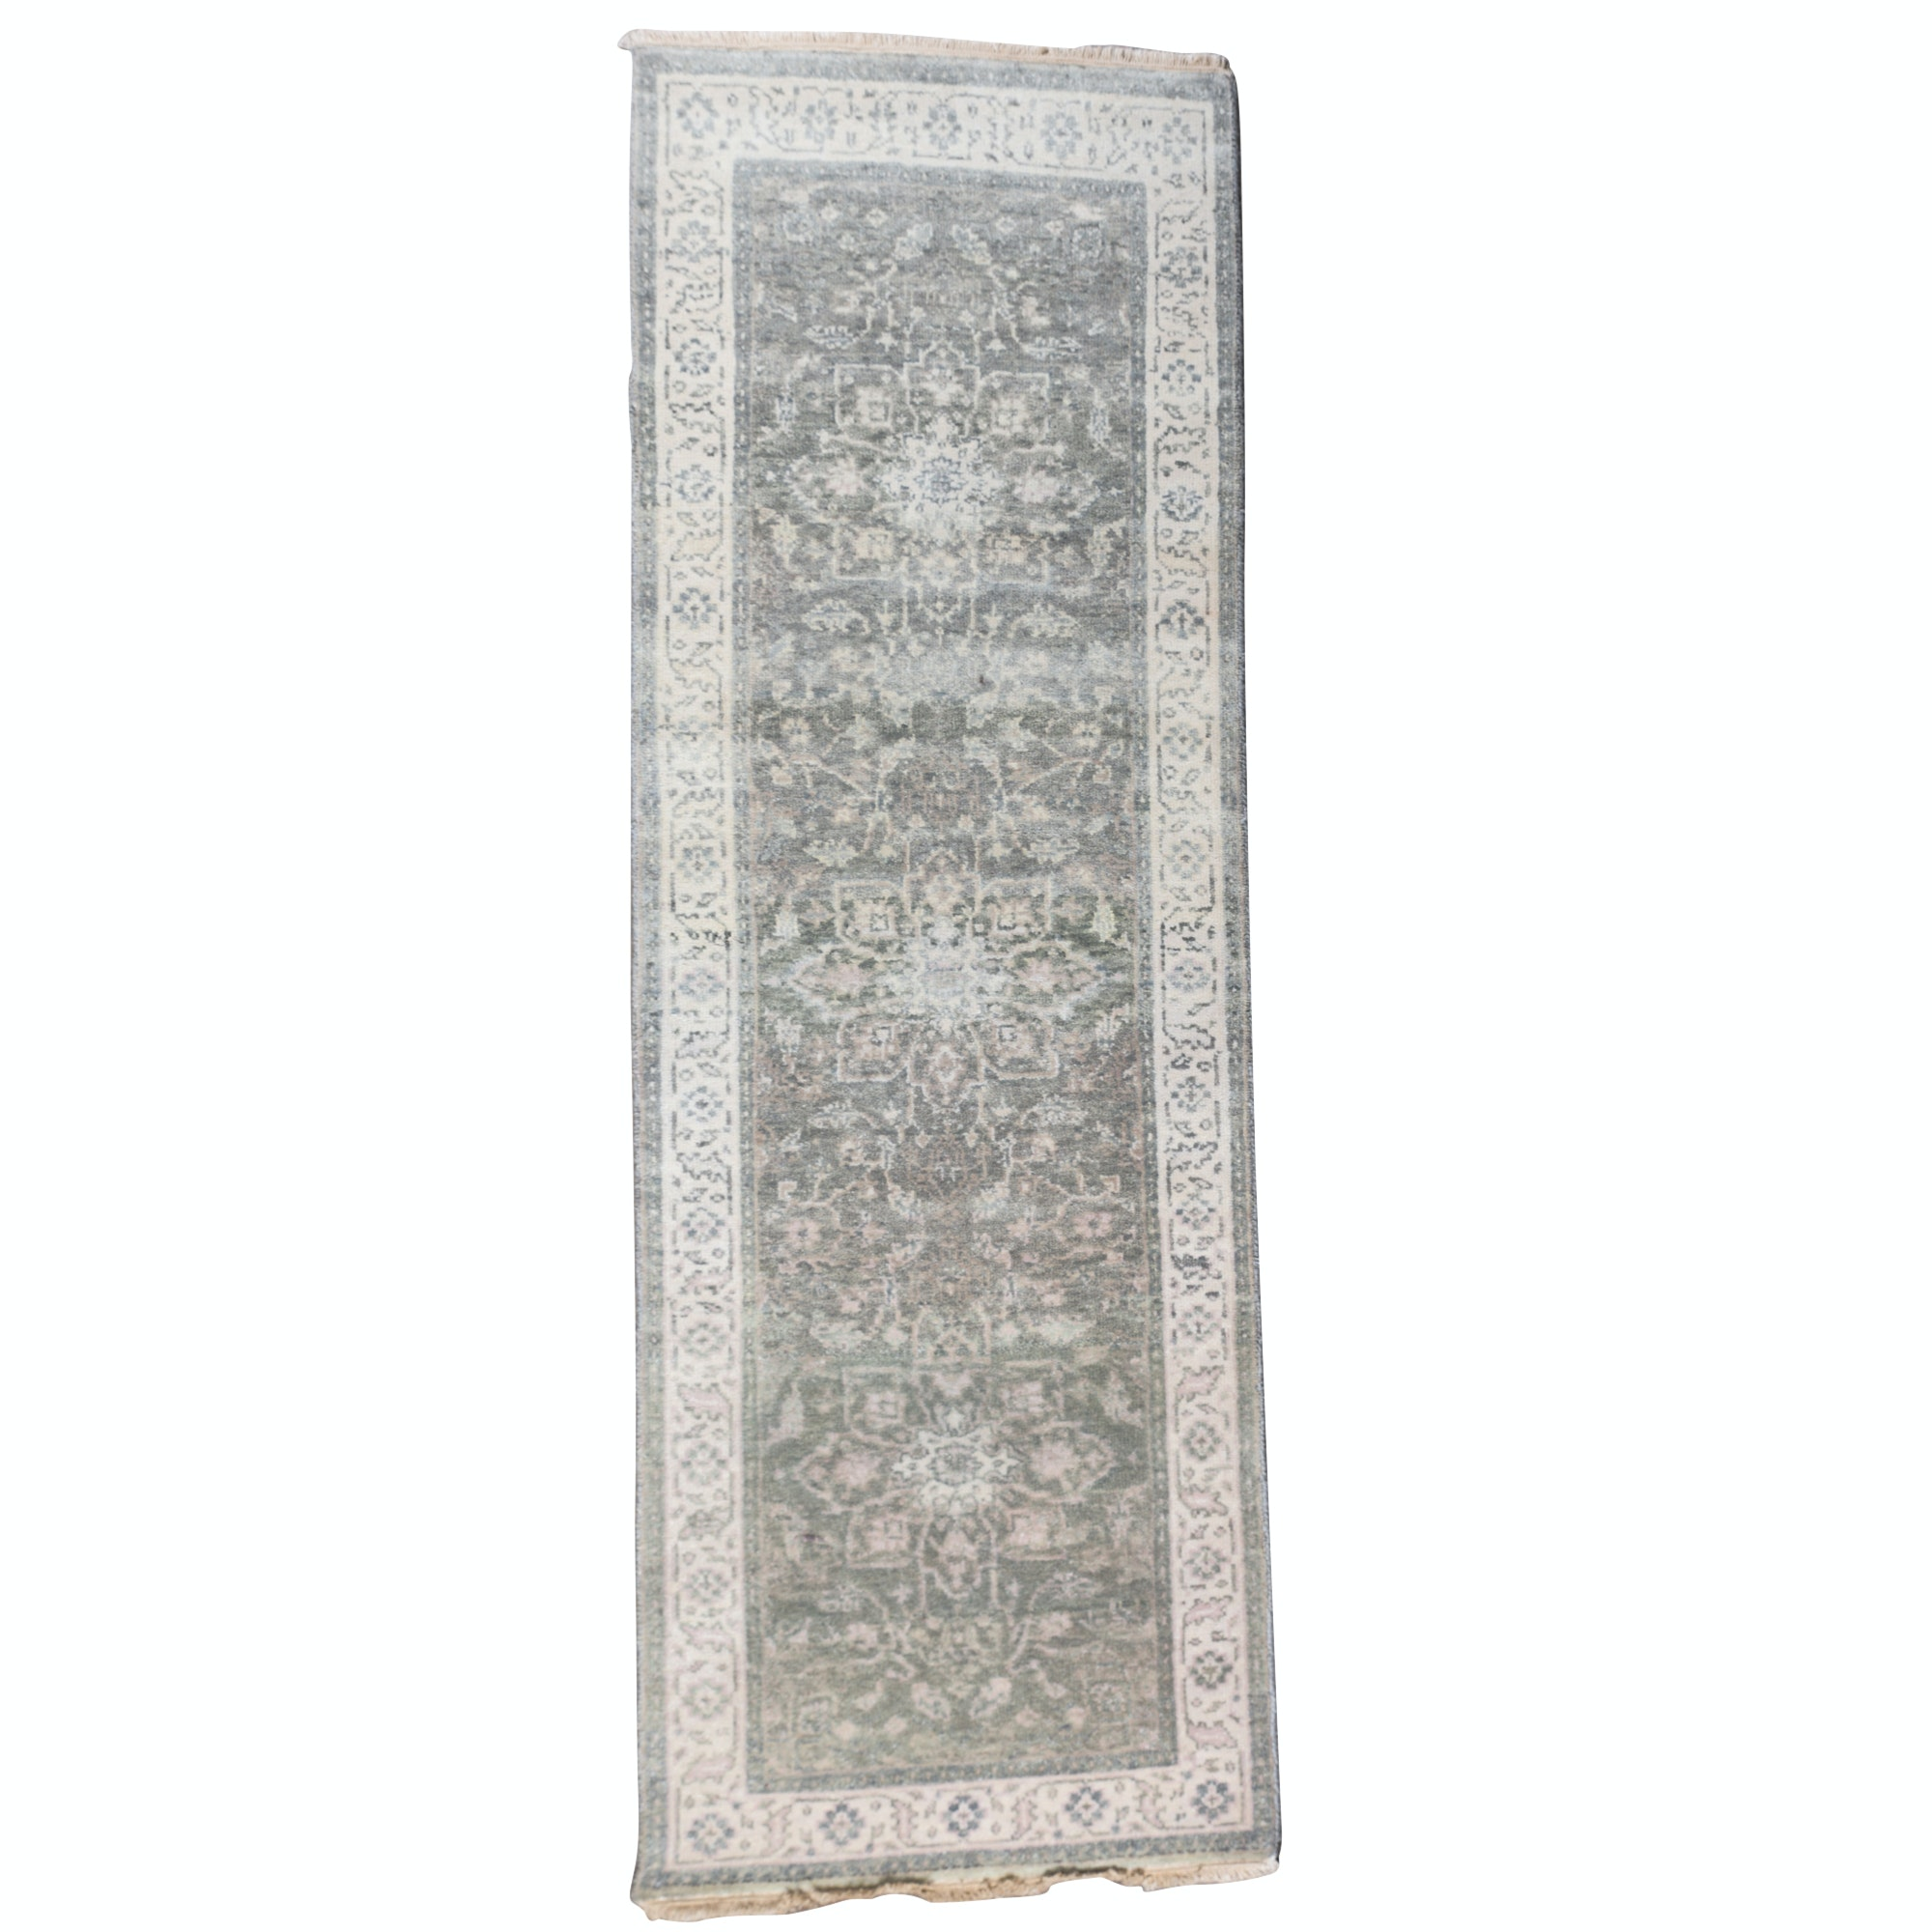 Hand-Knotted Indo-Oushak Wool Runner